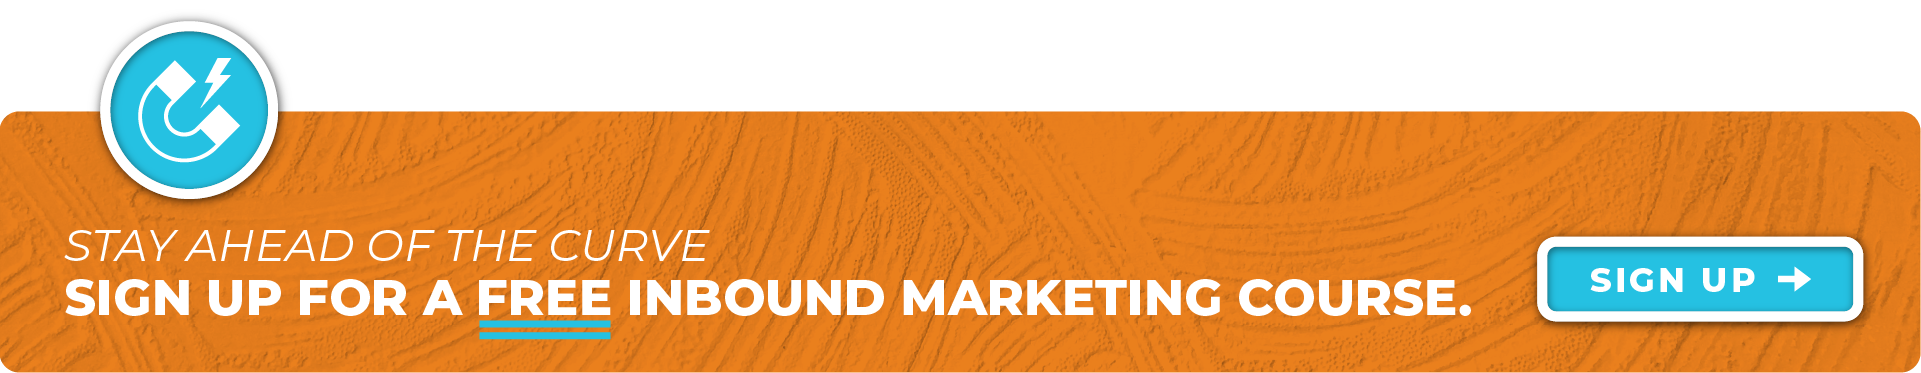 sign up for a free inbound marketing course